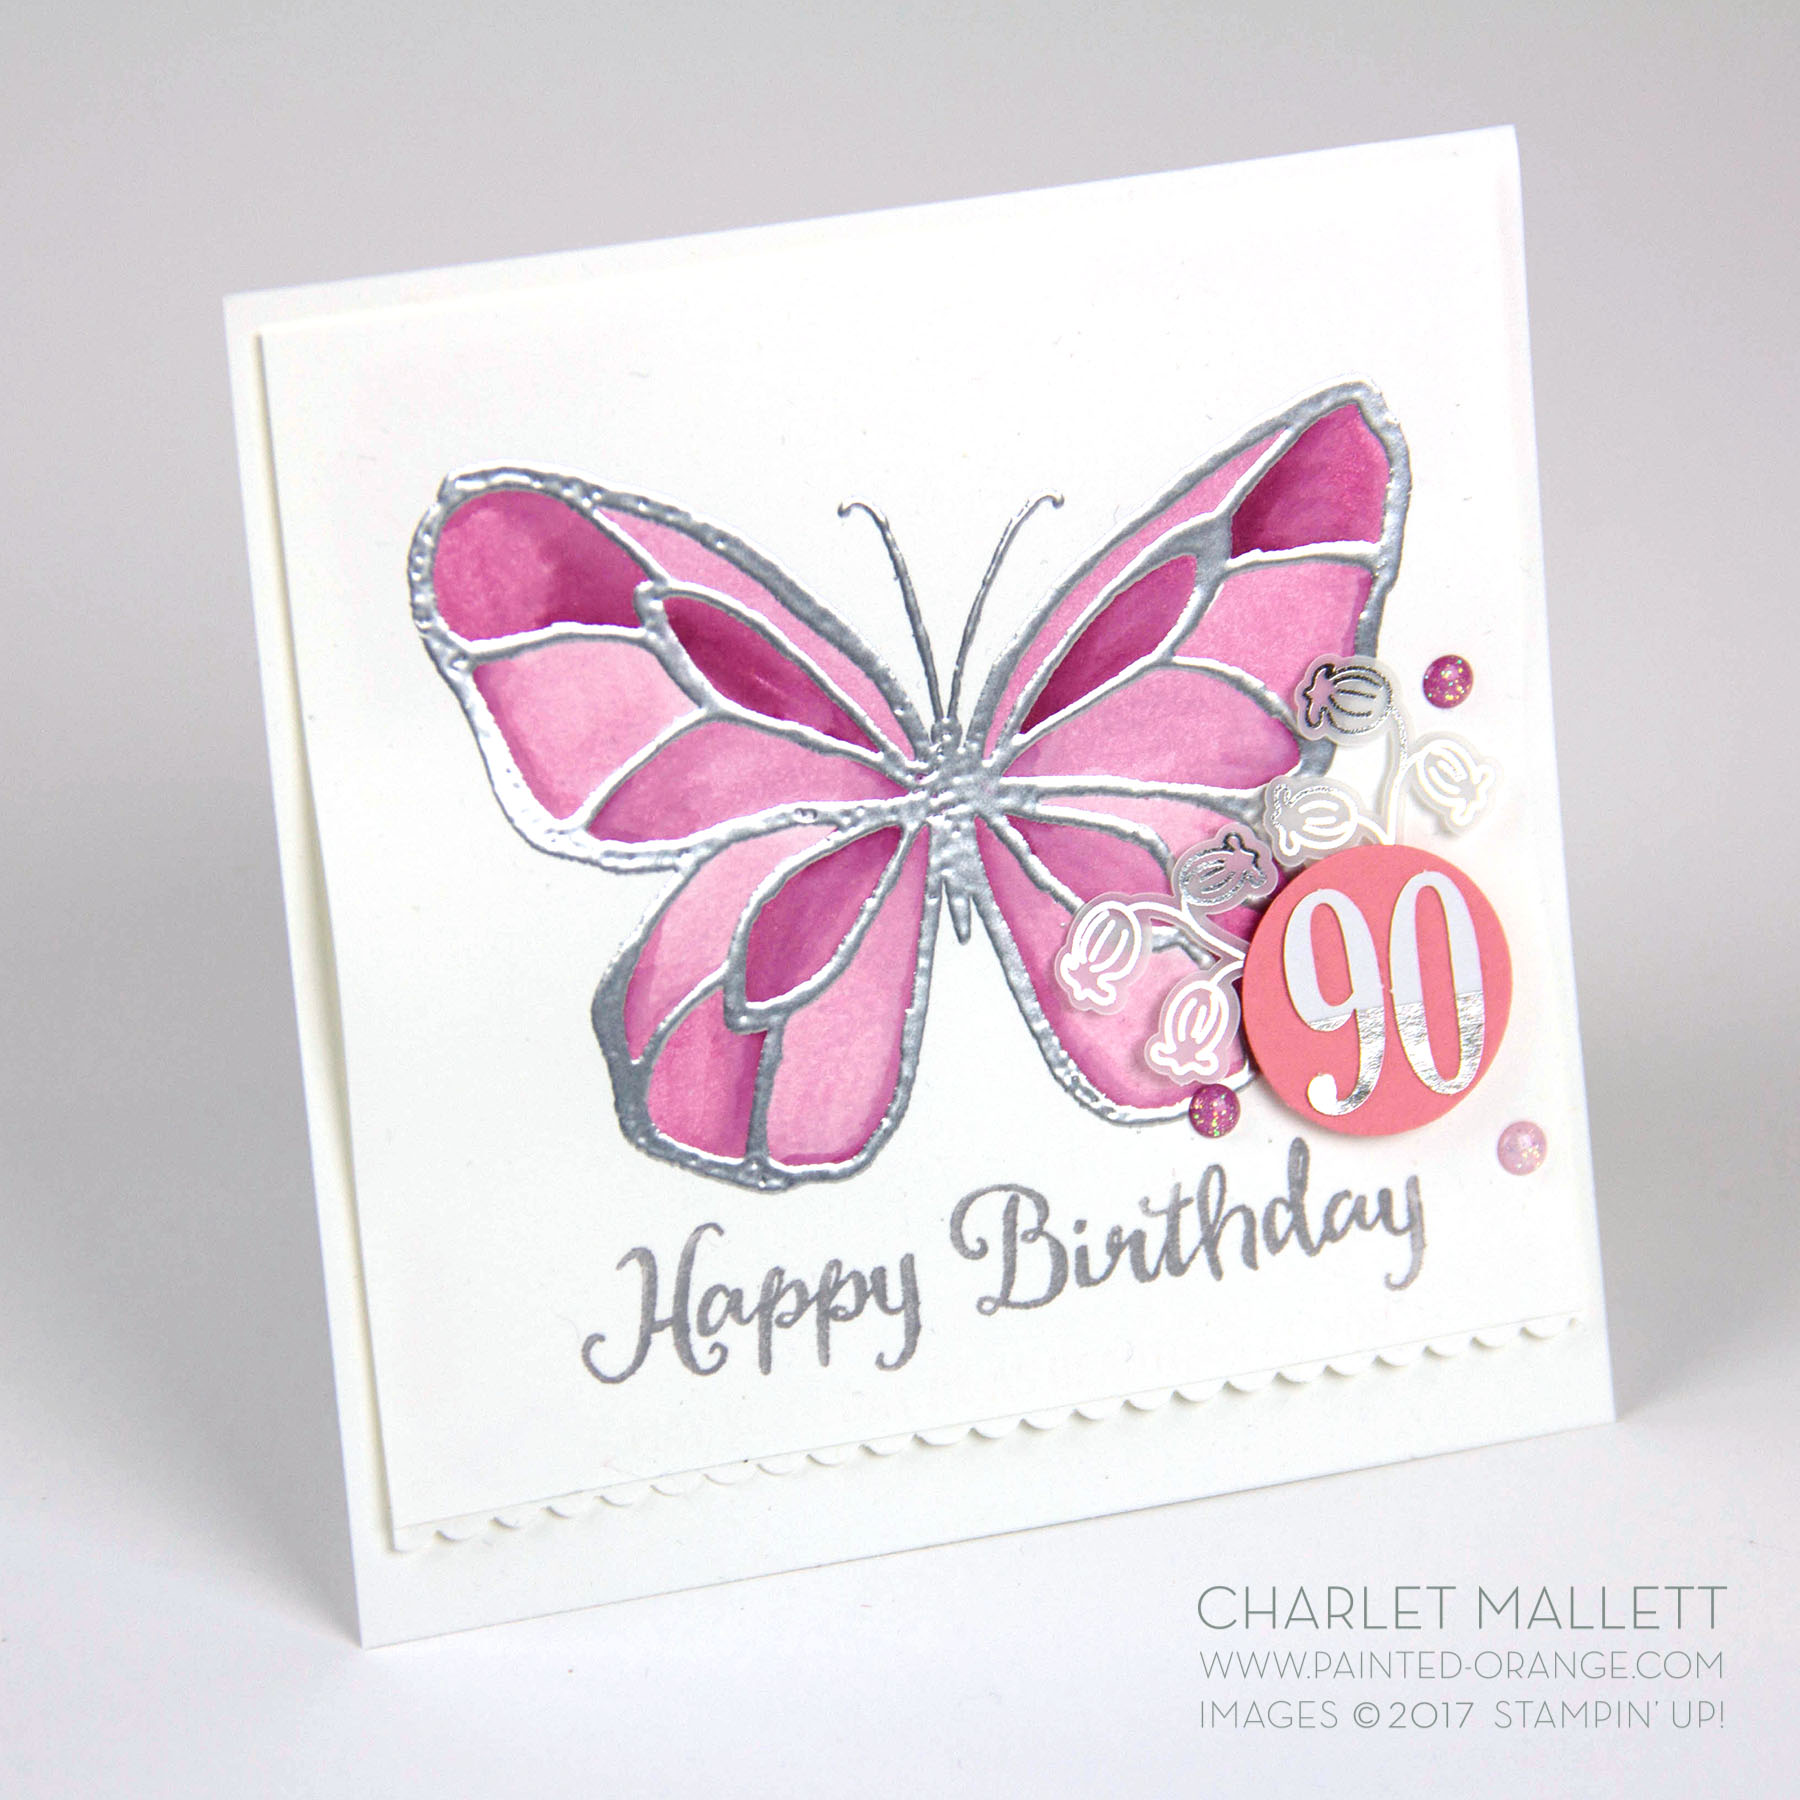 Beautiful Day 90th Birthday card - Charlet Mallett, Stampin' Up! Occasions 2018